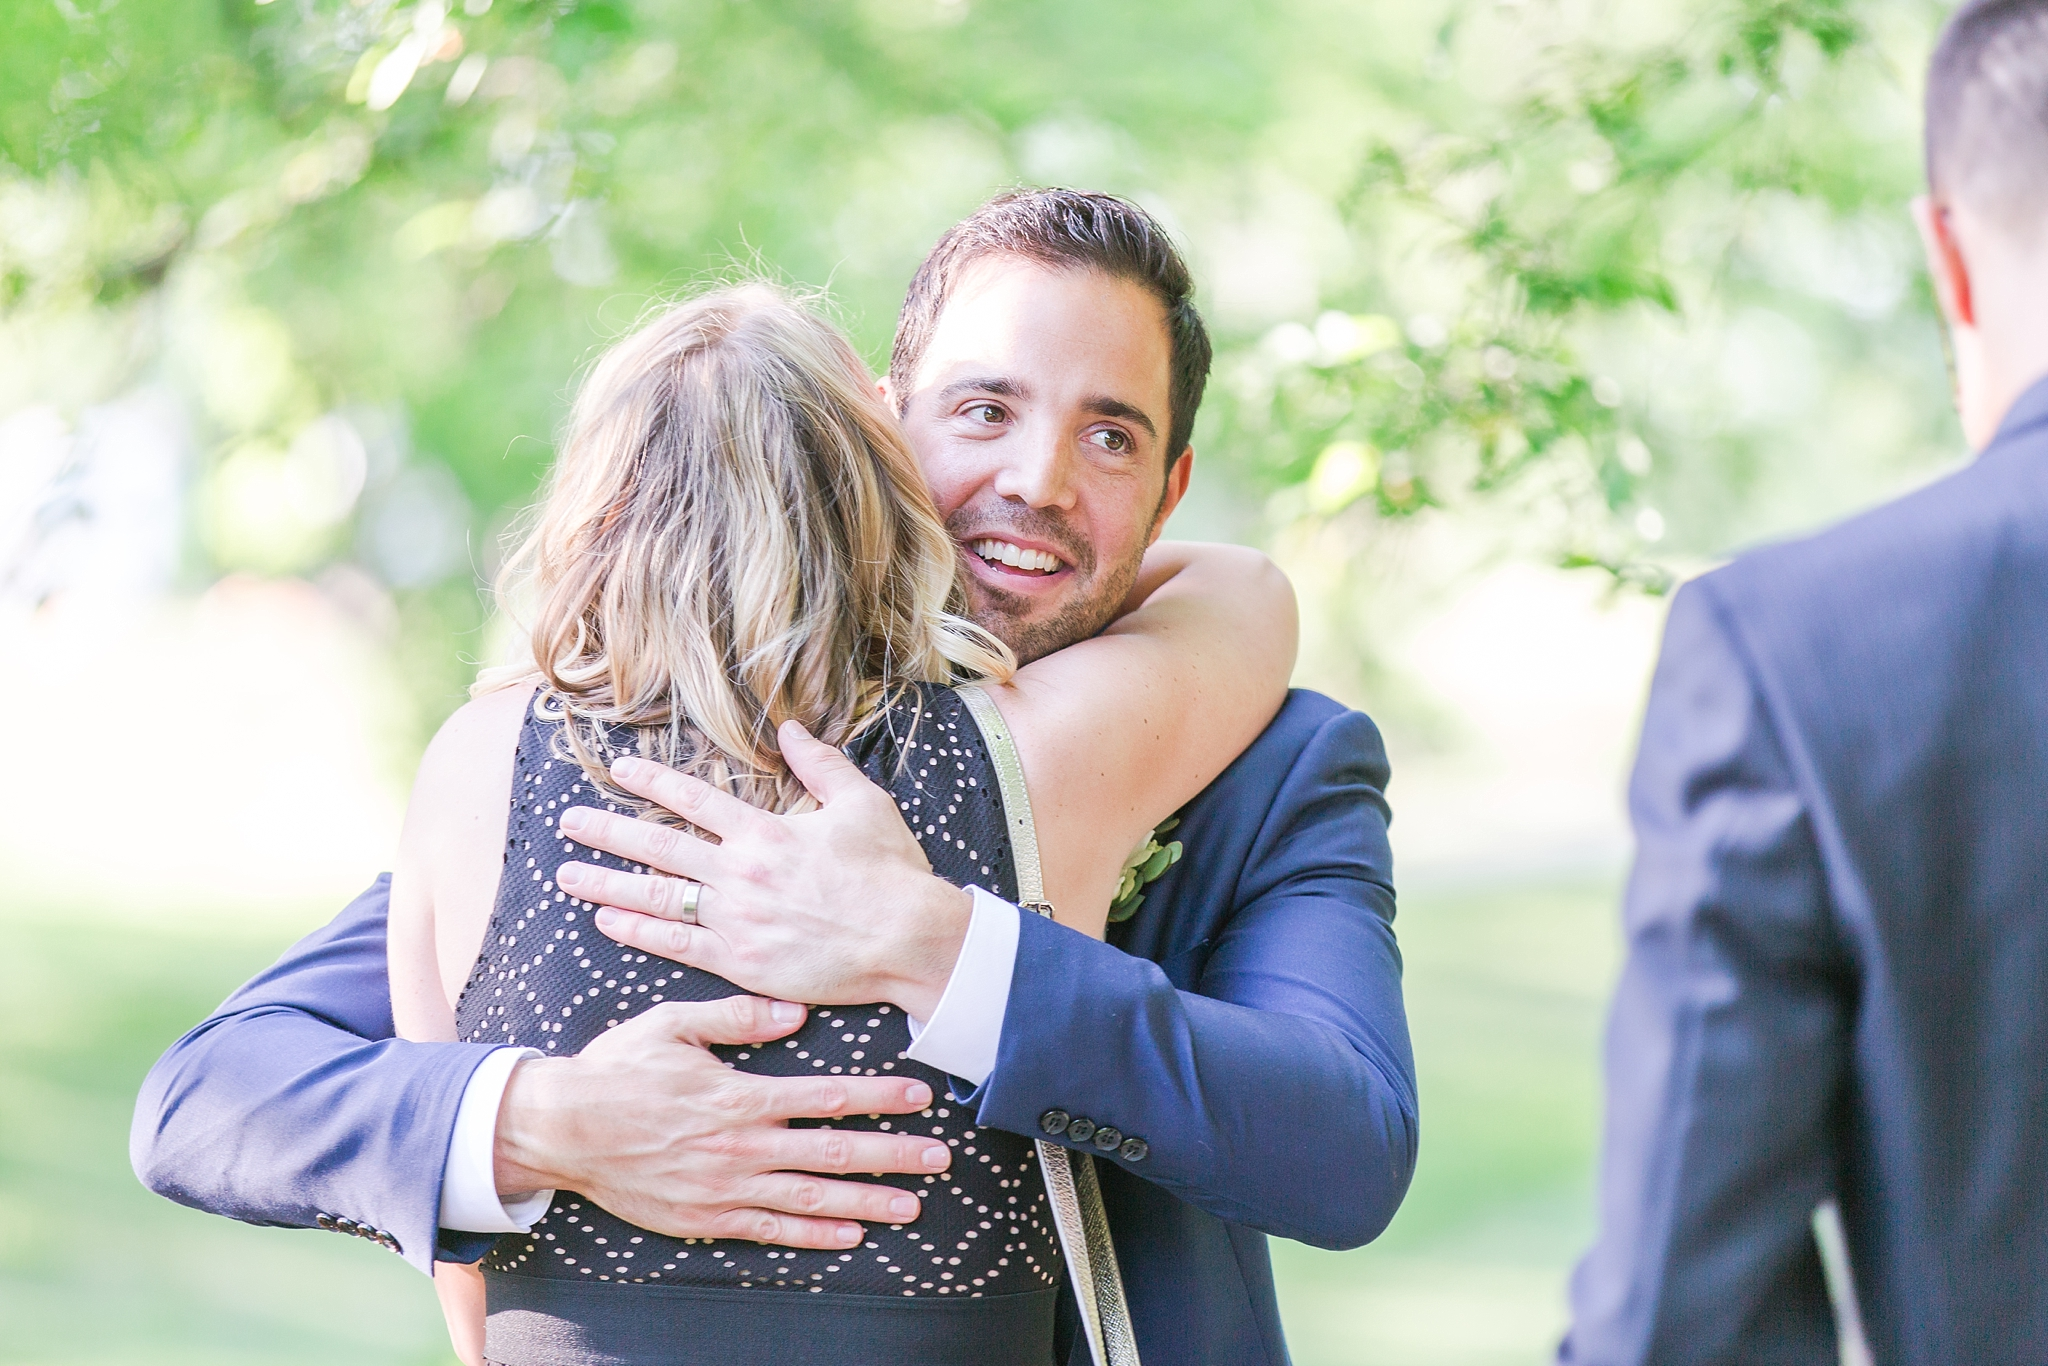 fun-candid-laid-back-wedding-photos-at-wellers-carriage-house-in-saline-michigan-and-at-the-eagle-crest-golf-resort-by-courtney-carolyn-photography_0077.jpg